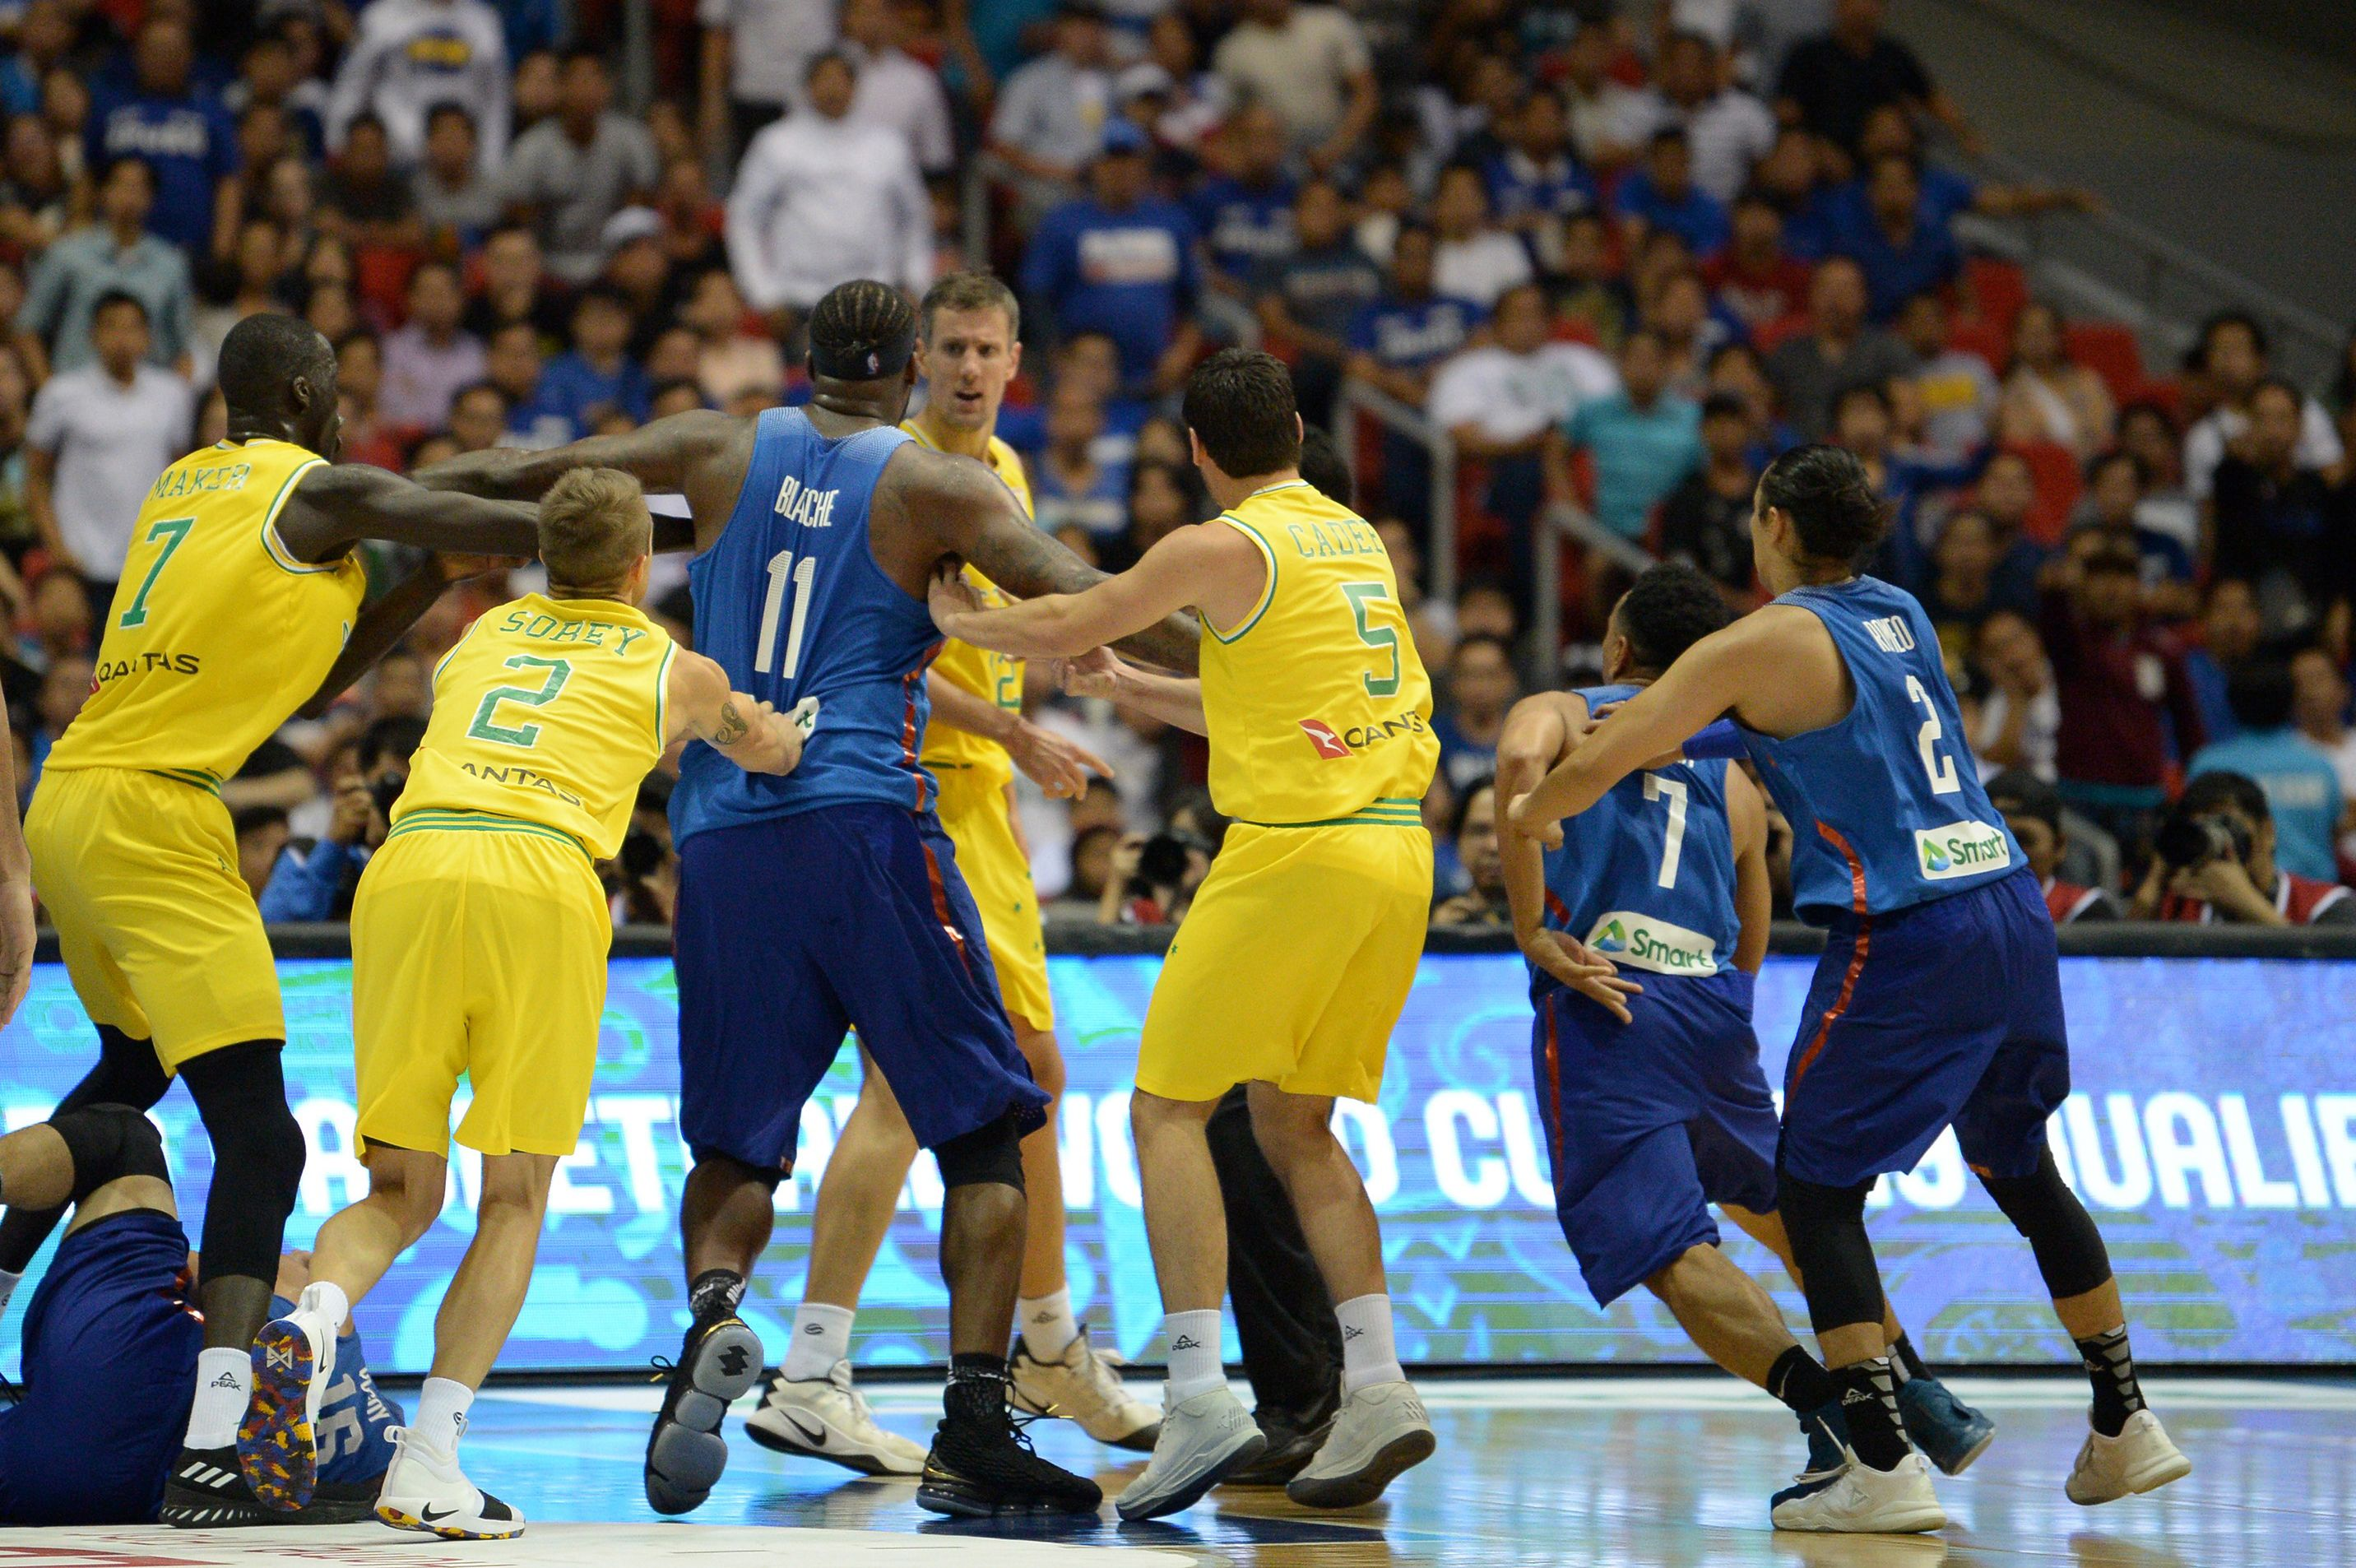 Philippine (blue) and Australian (yellow) players engage in a brawl during their FIBA World Cup Asian qualifier game at the Philippine arena in Bocaue town, Bulacan province, north of Manila on July 2, 2018. - Australia won by default 89-53.